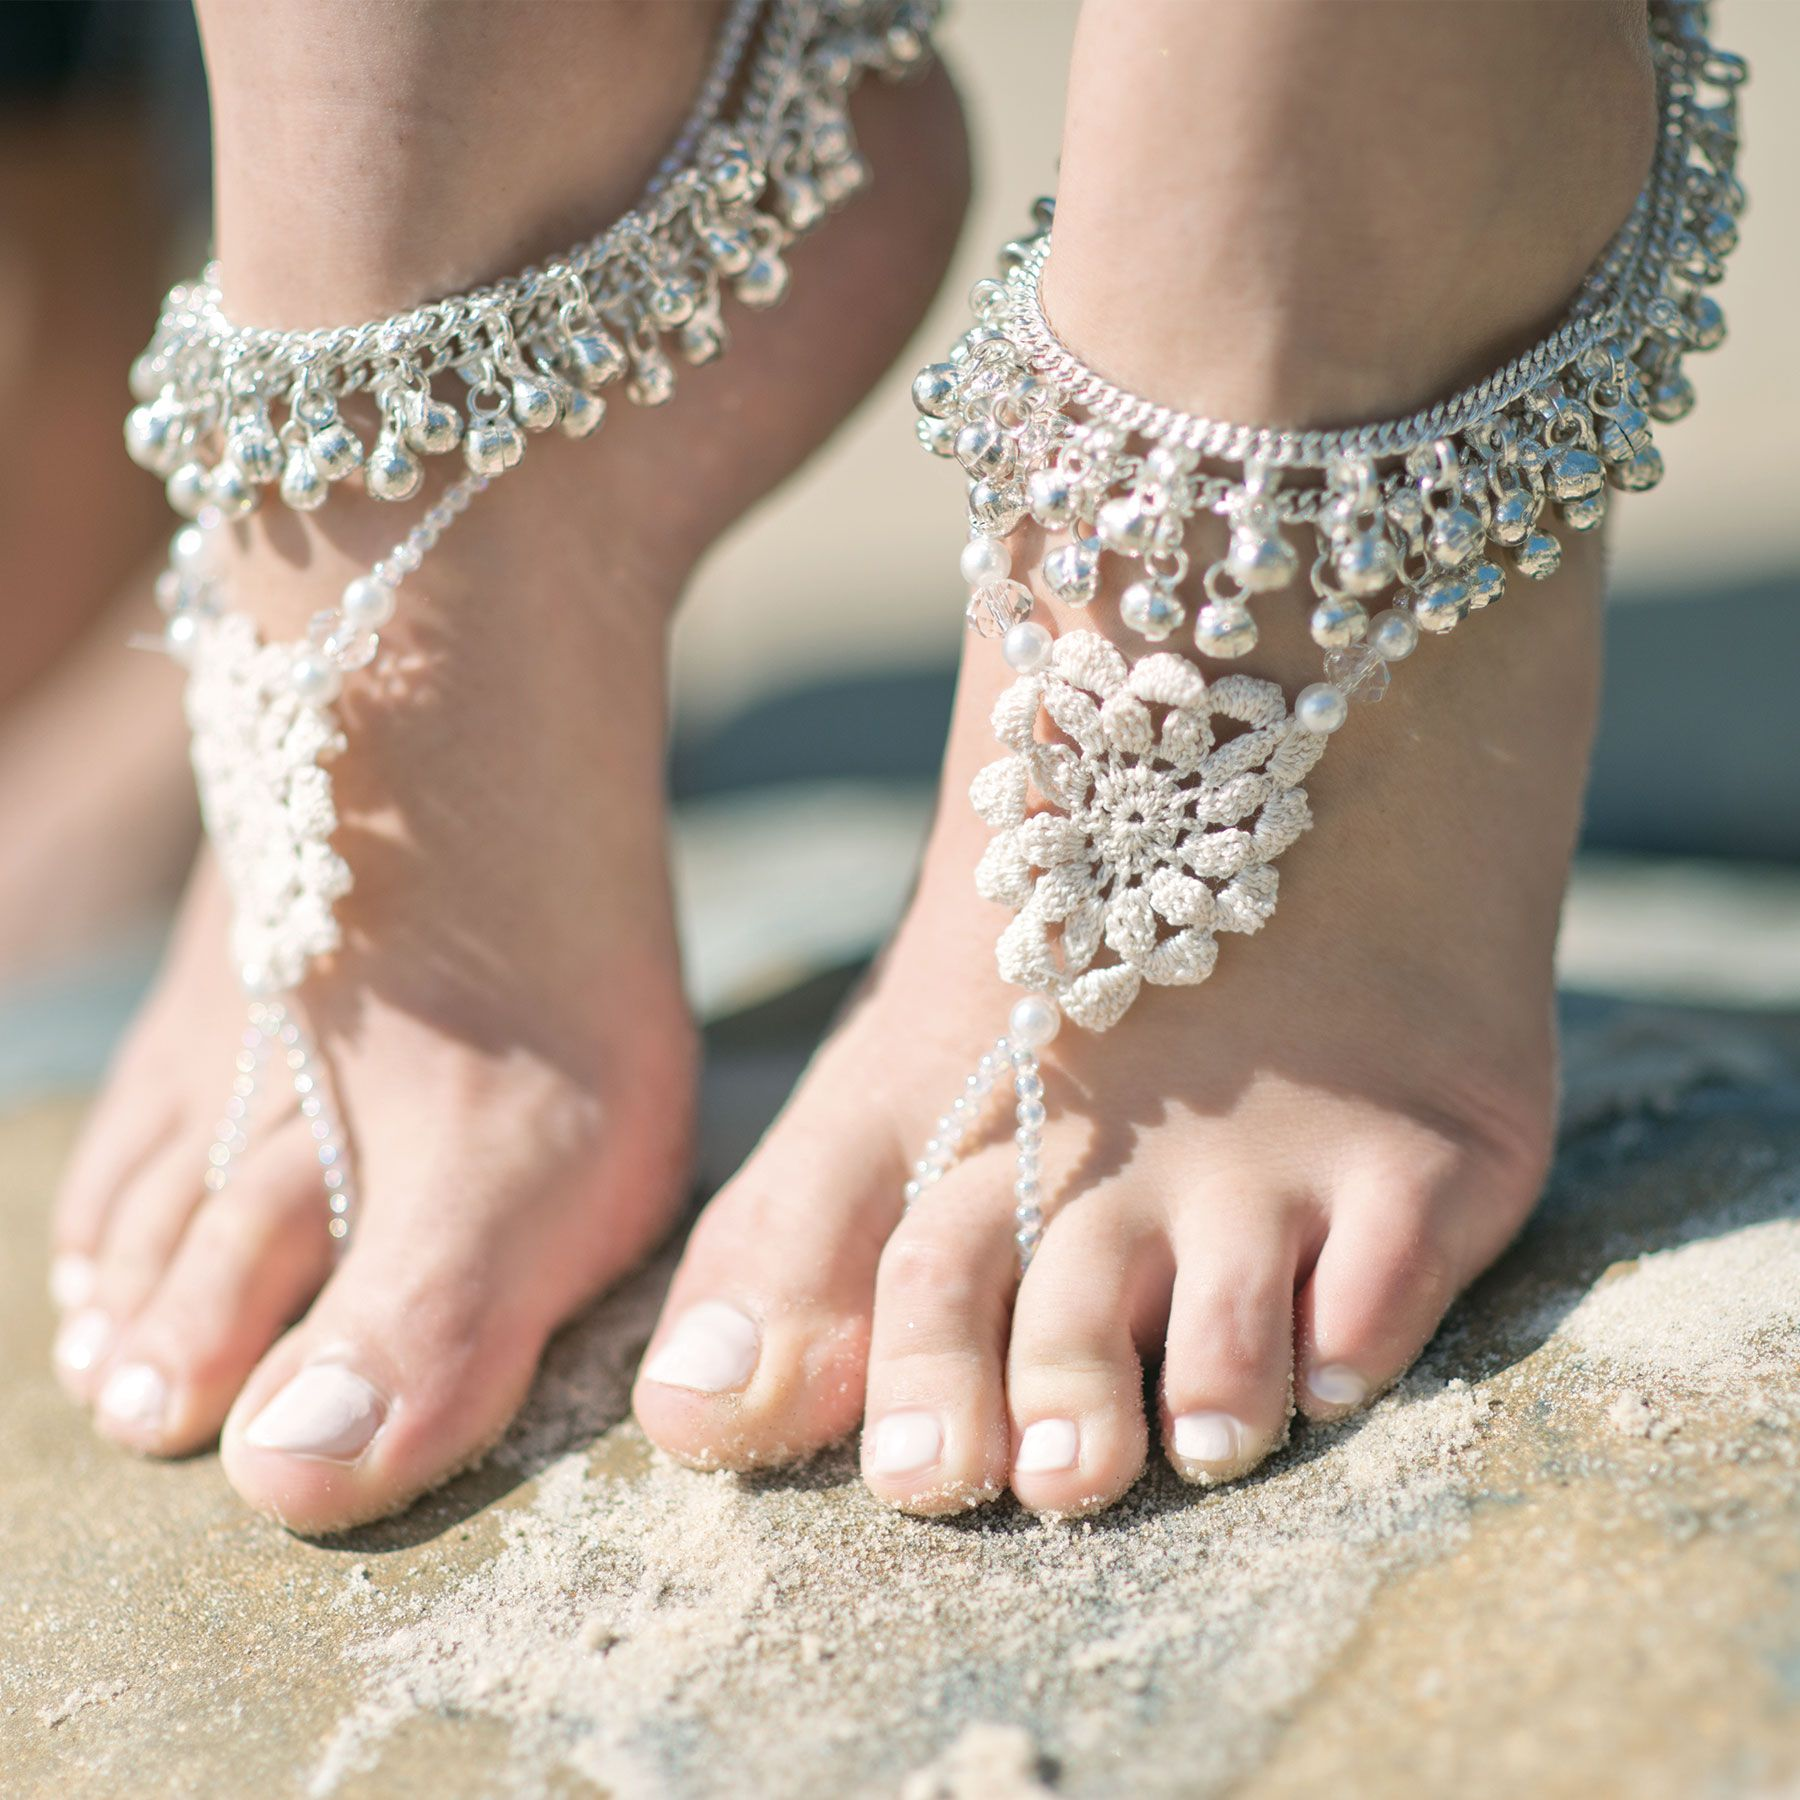 sandals beach wedding jewelry com dp anklet barefoot piece bracelet starfish ankle bienvenu anklets foot amazon